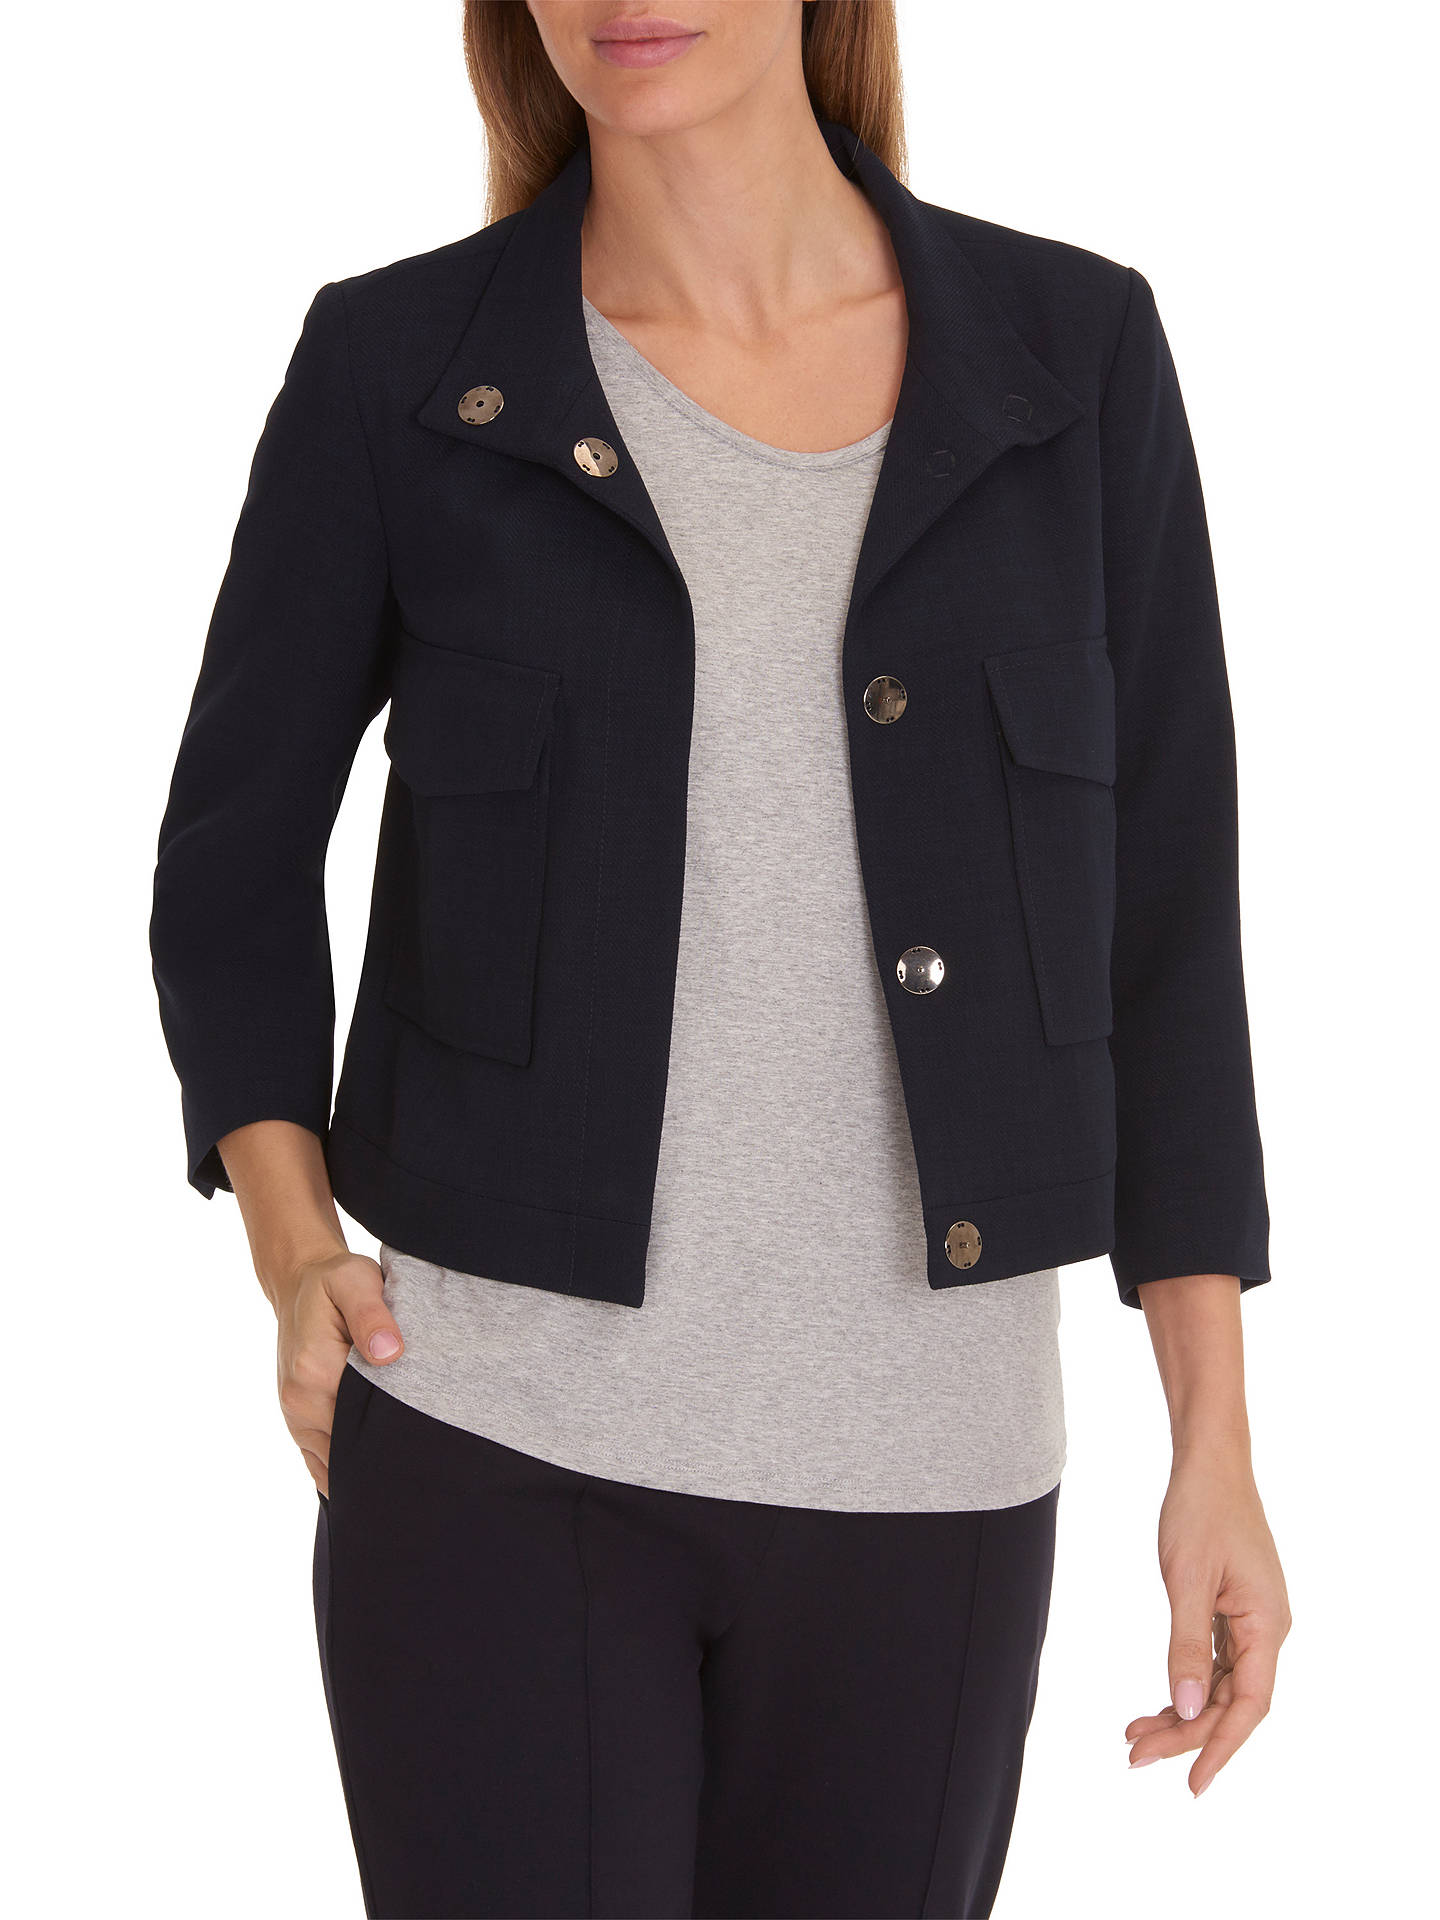 BuyBetty & Co. Short Tailored Jacket, Night Sky, 10 Online at johnlewis.com